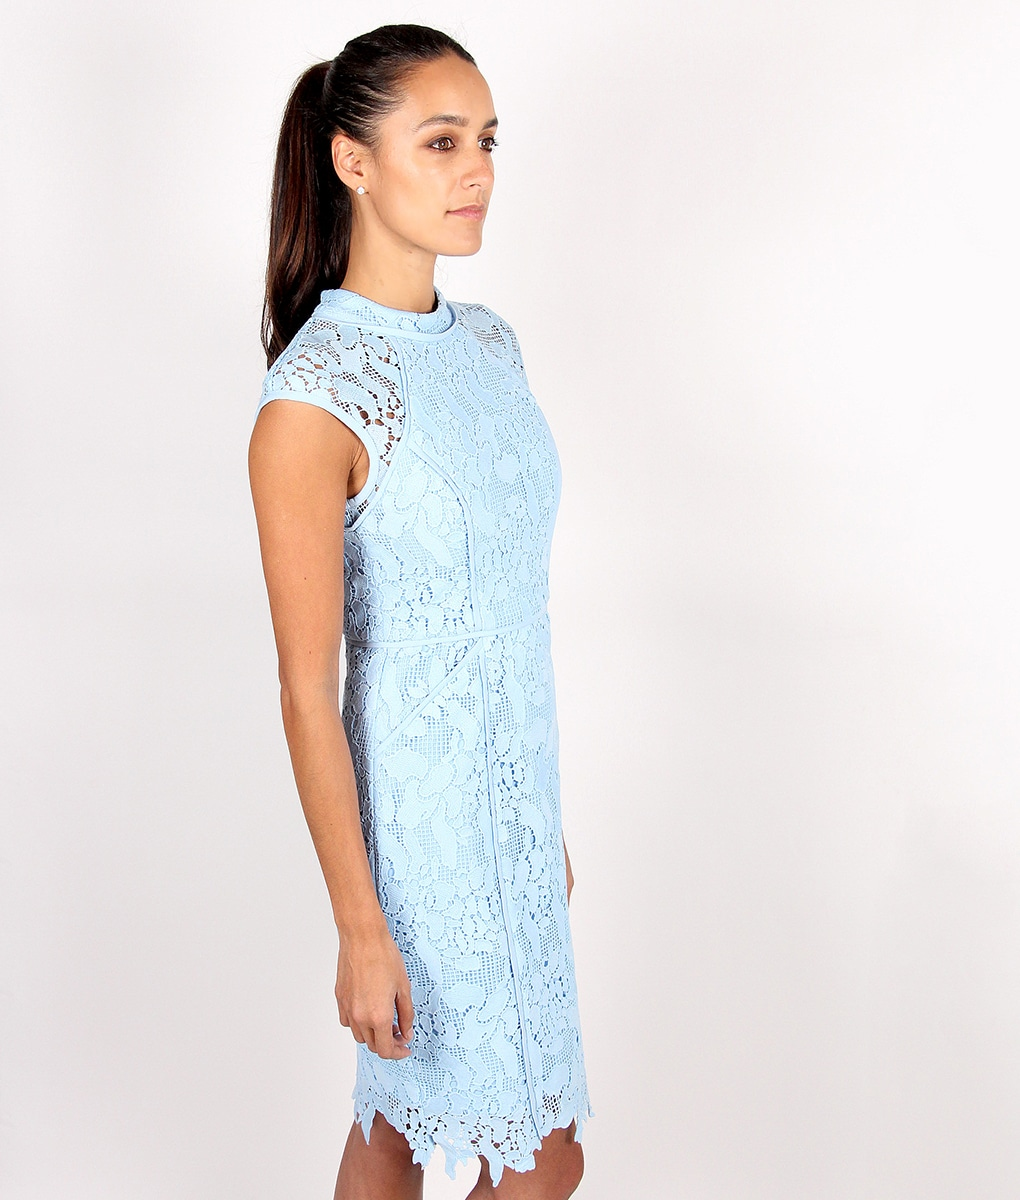 Alila-Light-Blue-Fitted-Lace-Dress-for-wedding-by-Lumier-by-Bariano-side